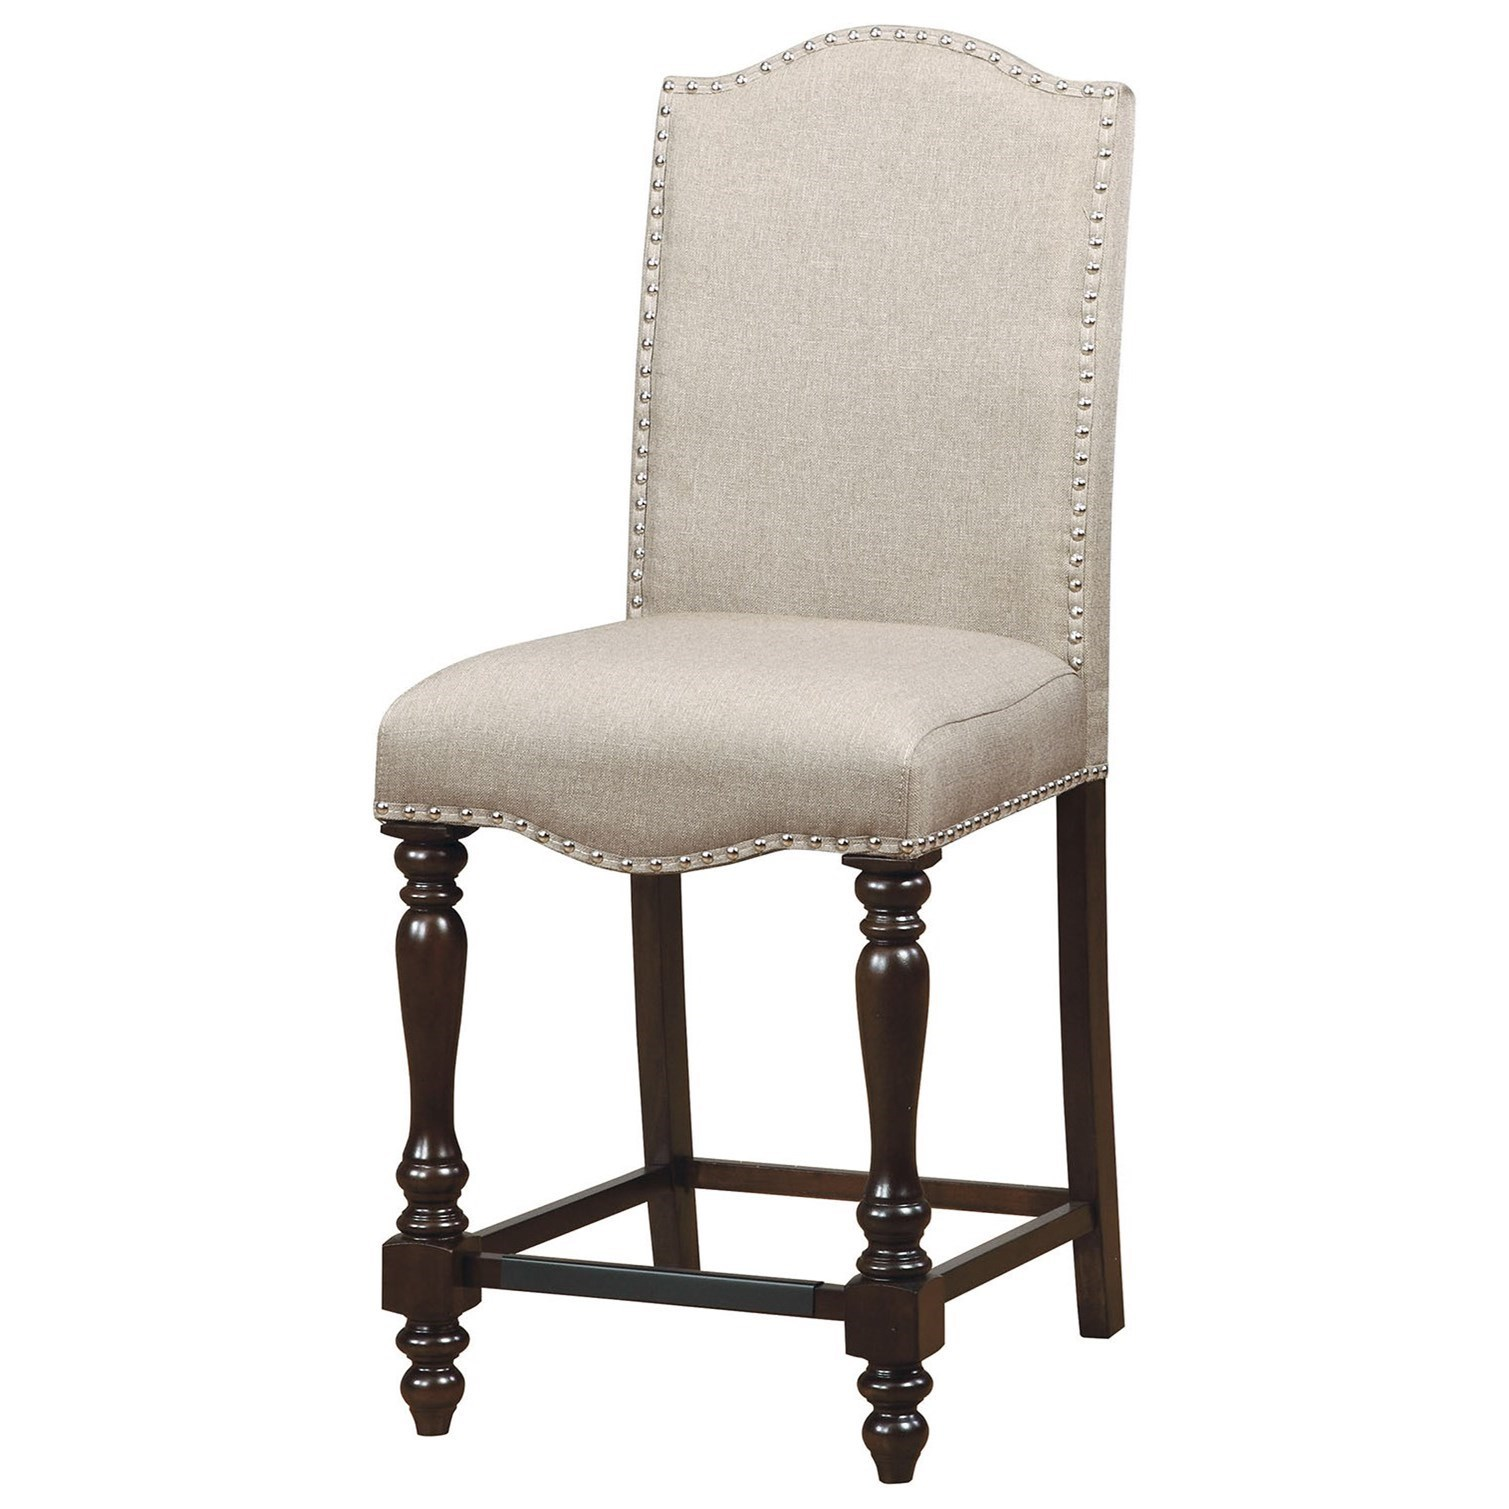 upholstered counter height chairs desk chair makeover furniture of america hurdsfield set 2 with nailhead trim